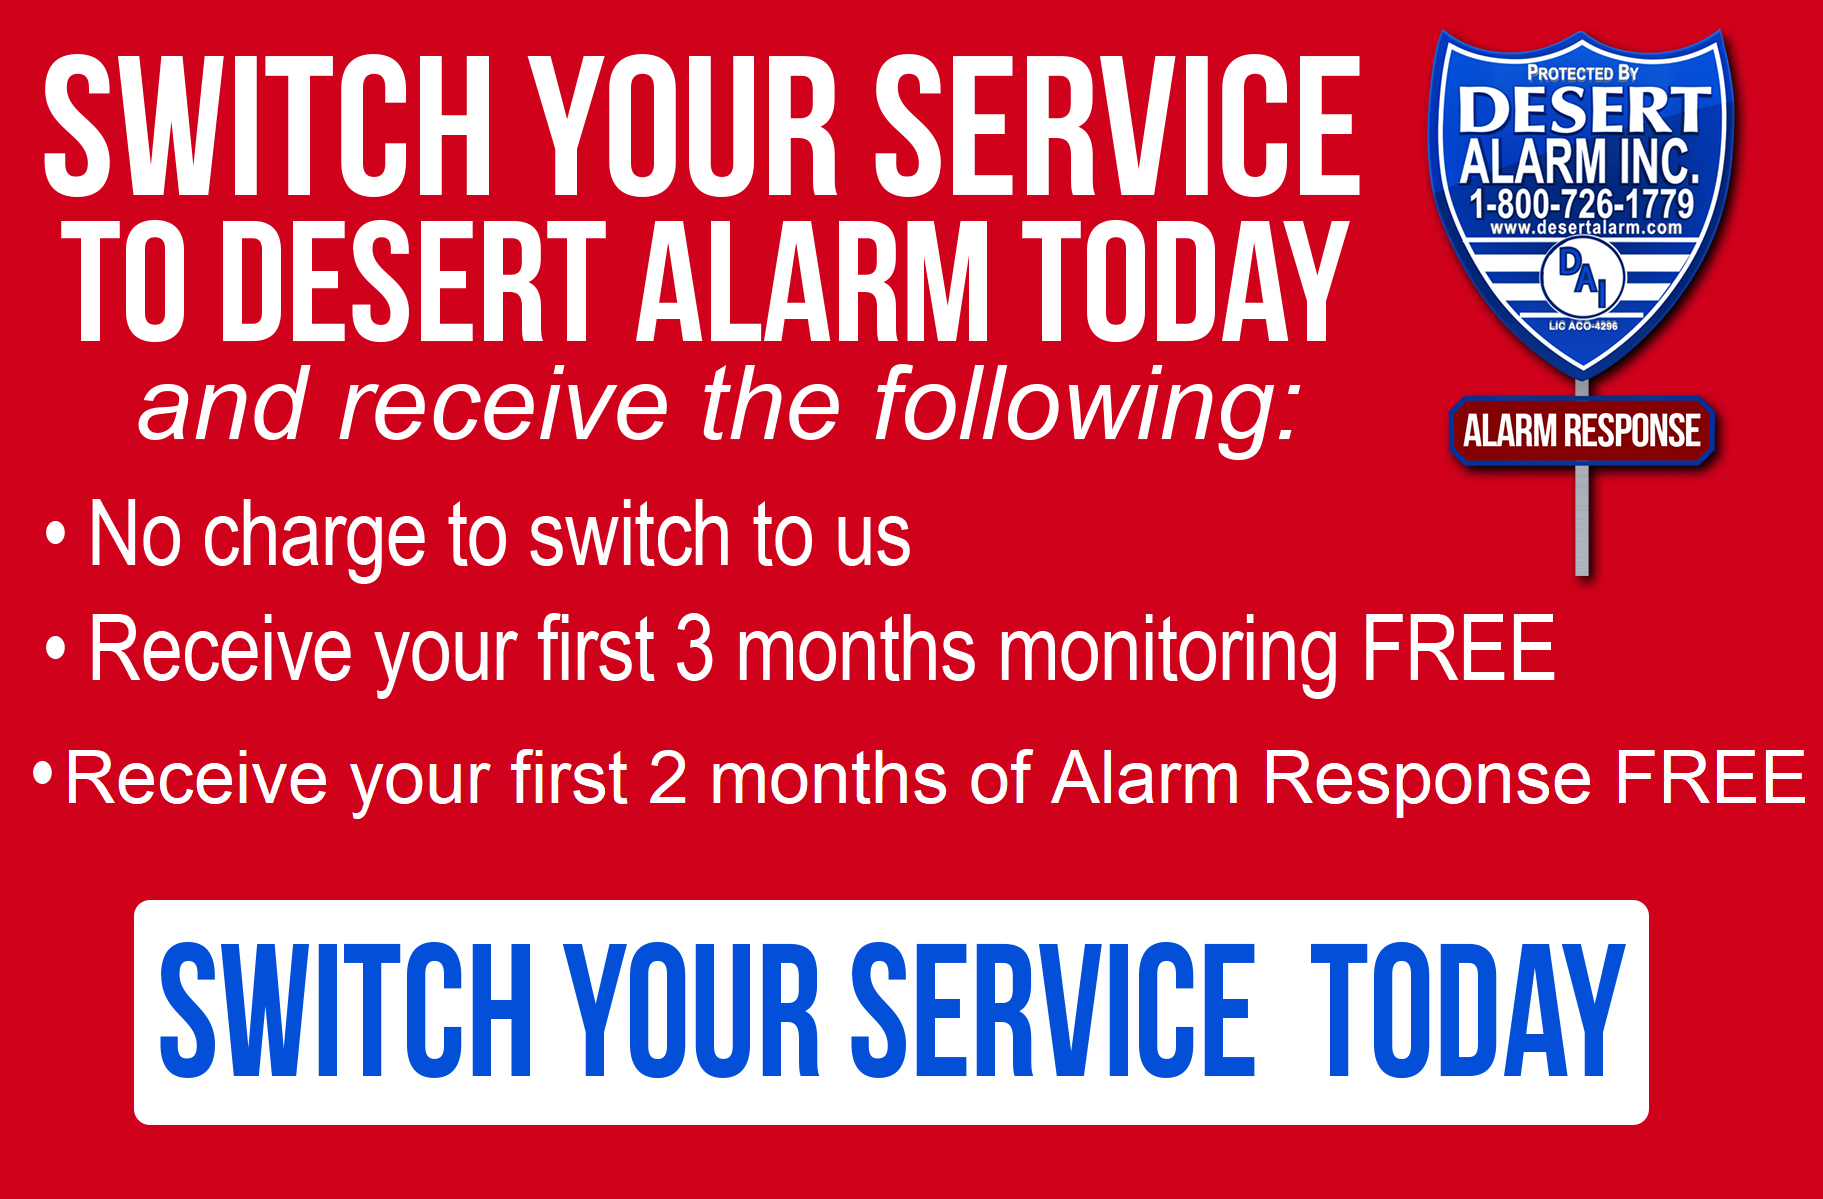 Switch your Service to Desert Alarm | Security Alarm System Company